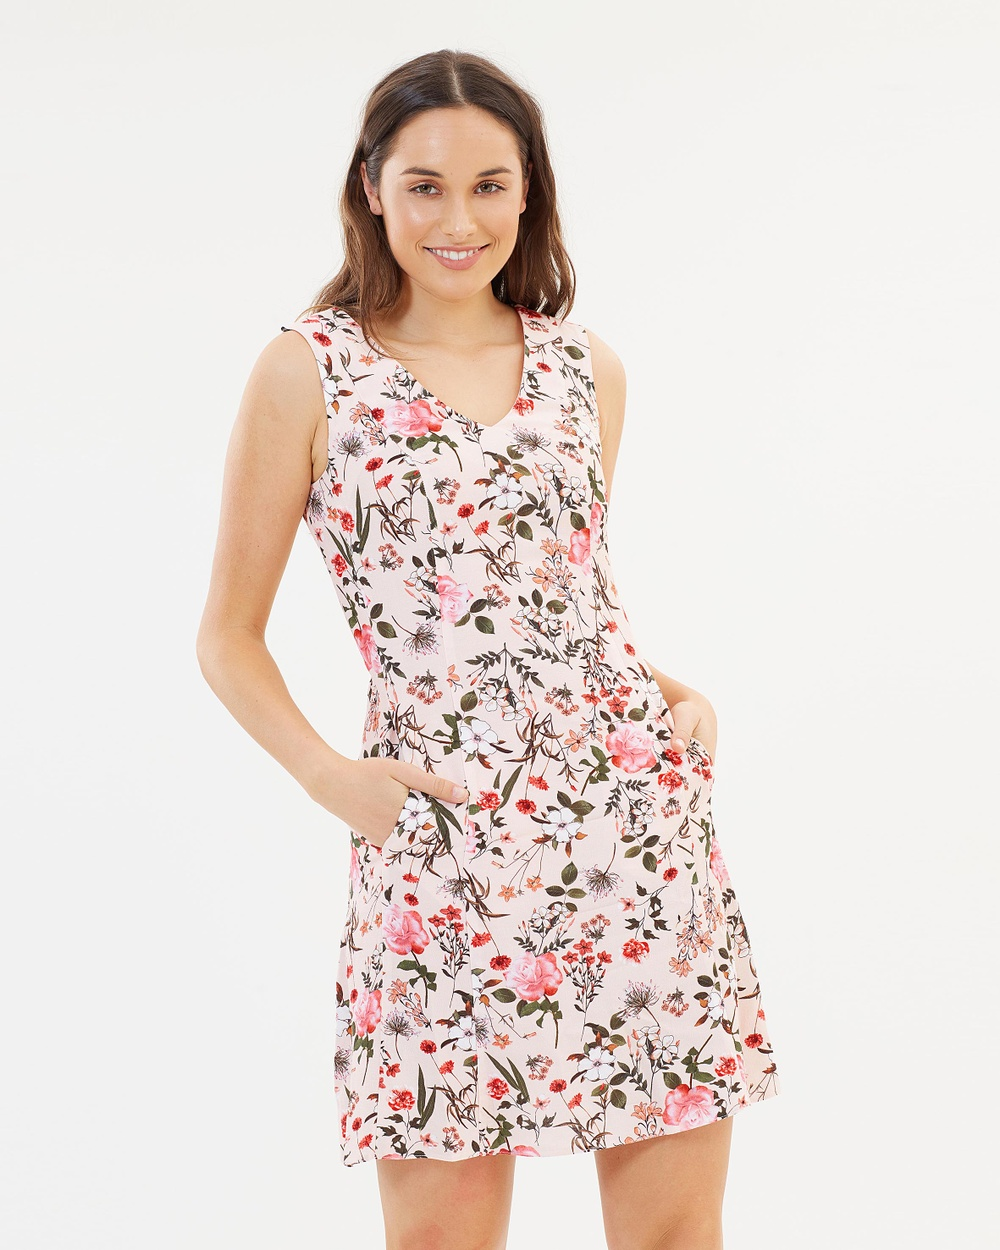 Photo of Dorothy Perkins Dorothy Perkins Floral Fit and Flare Dress Printed Dresses Blush Floral Fit-and-Flare Dress - Renowned for feminine style and accessibility, Dorothy Perkins has carved an inimitable reputation as one of the UK's leading fashion brands. The Floral Fit-and-Flare Dress is a gorgeously patterned sun dress constructed from a lightweight crepe fabrication. Style yours with a wide brim hat and boots for a relaxed off-duty edit. Our model is wearing a size UK 8